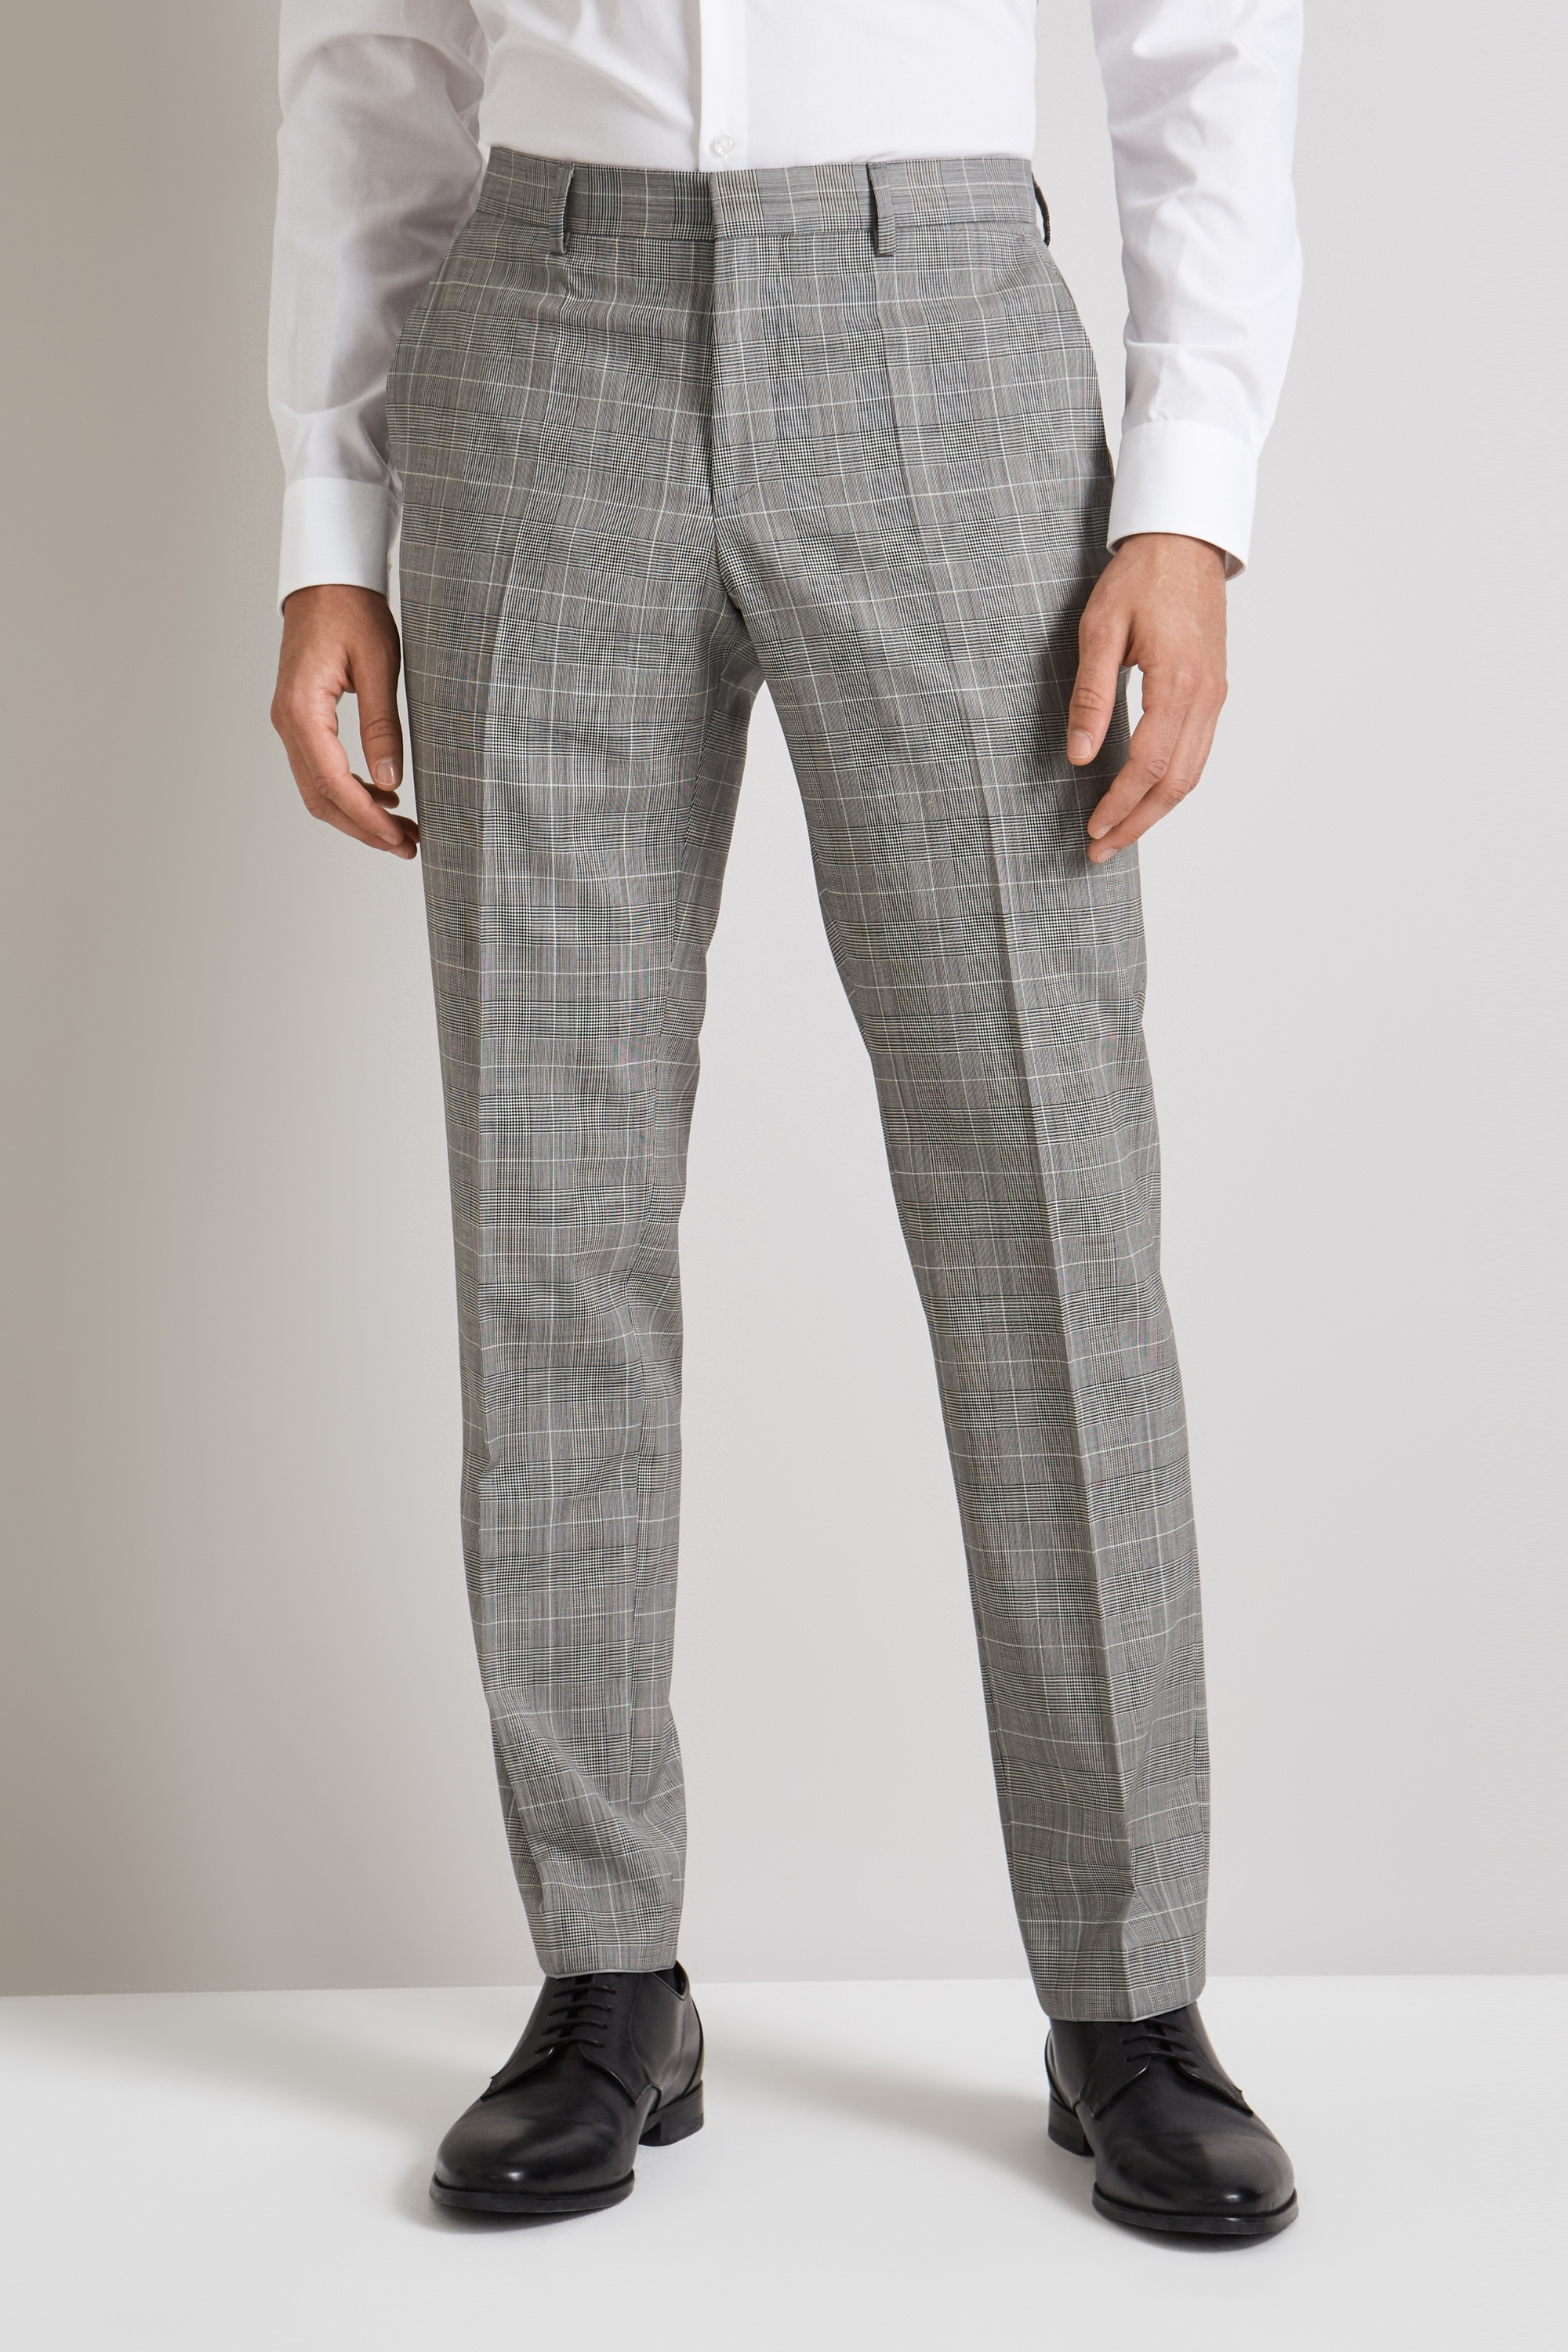 6a049d55c HUGO by Hugo Boss Black and White Prince of Wales Pants